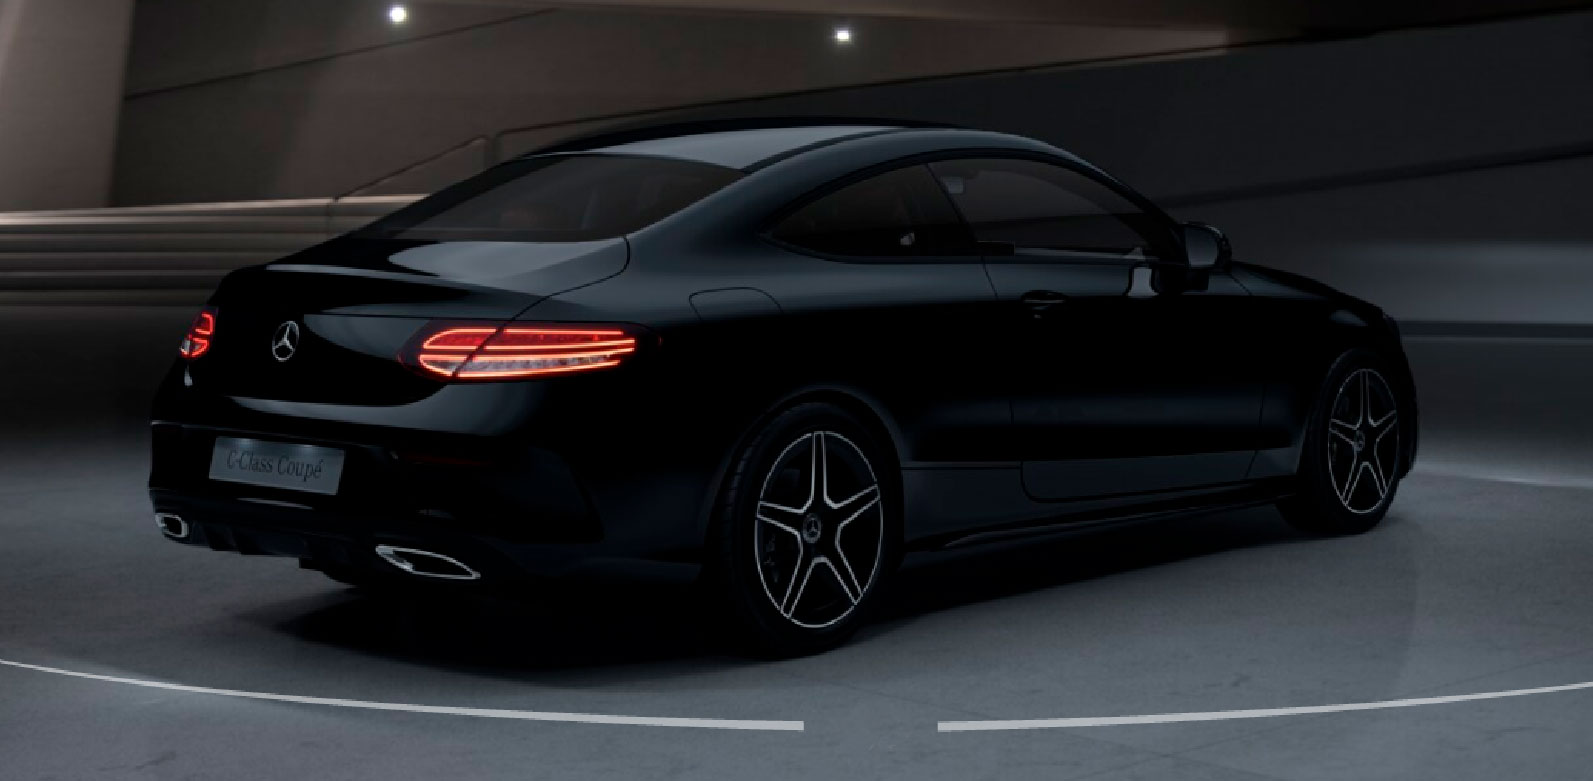 Mercedes-Benz C-Class Coupe інтер'єр